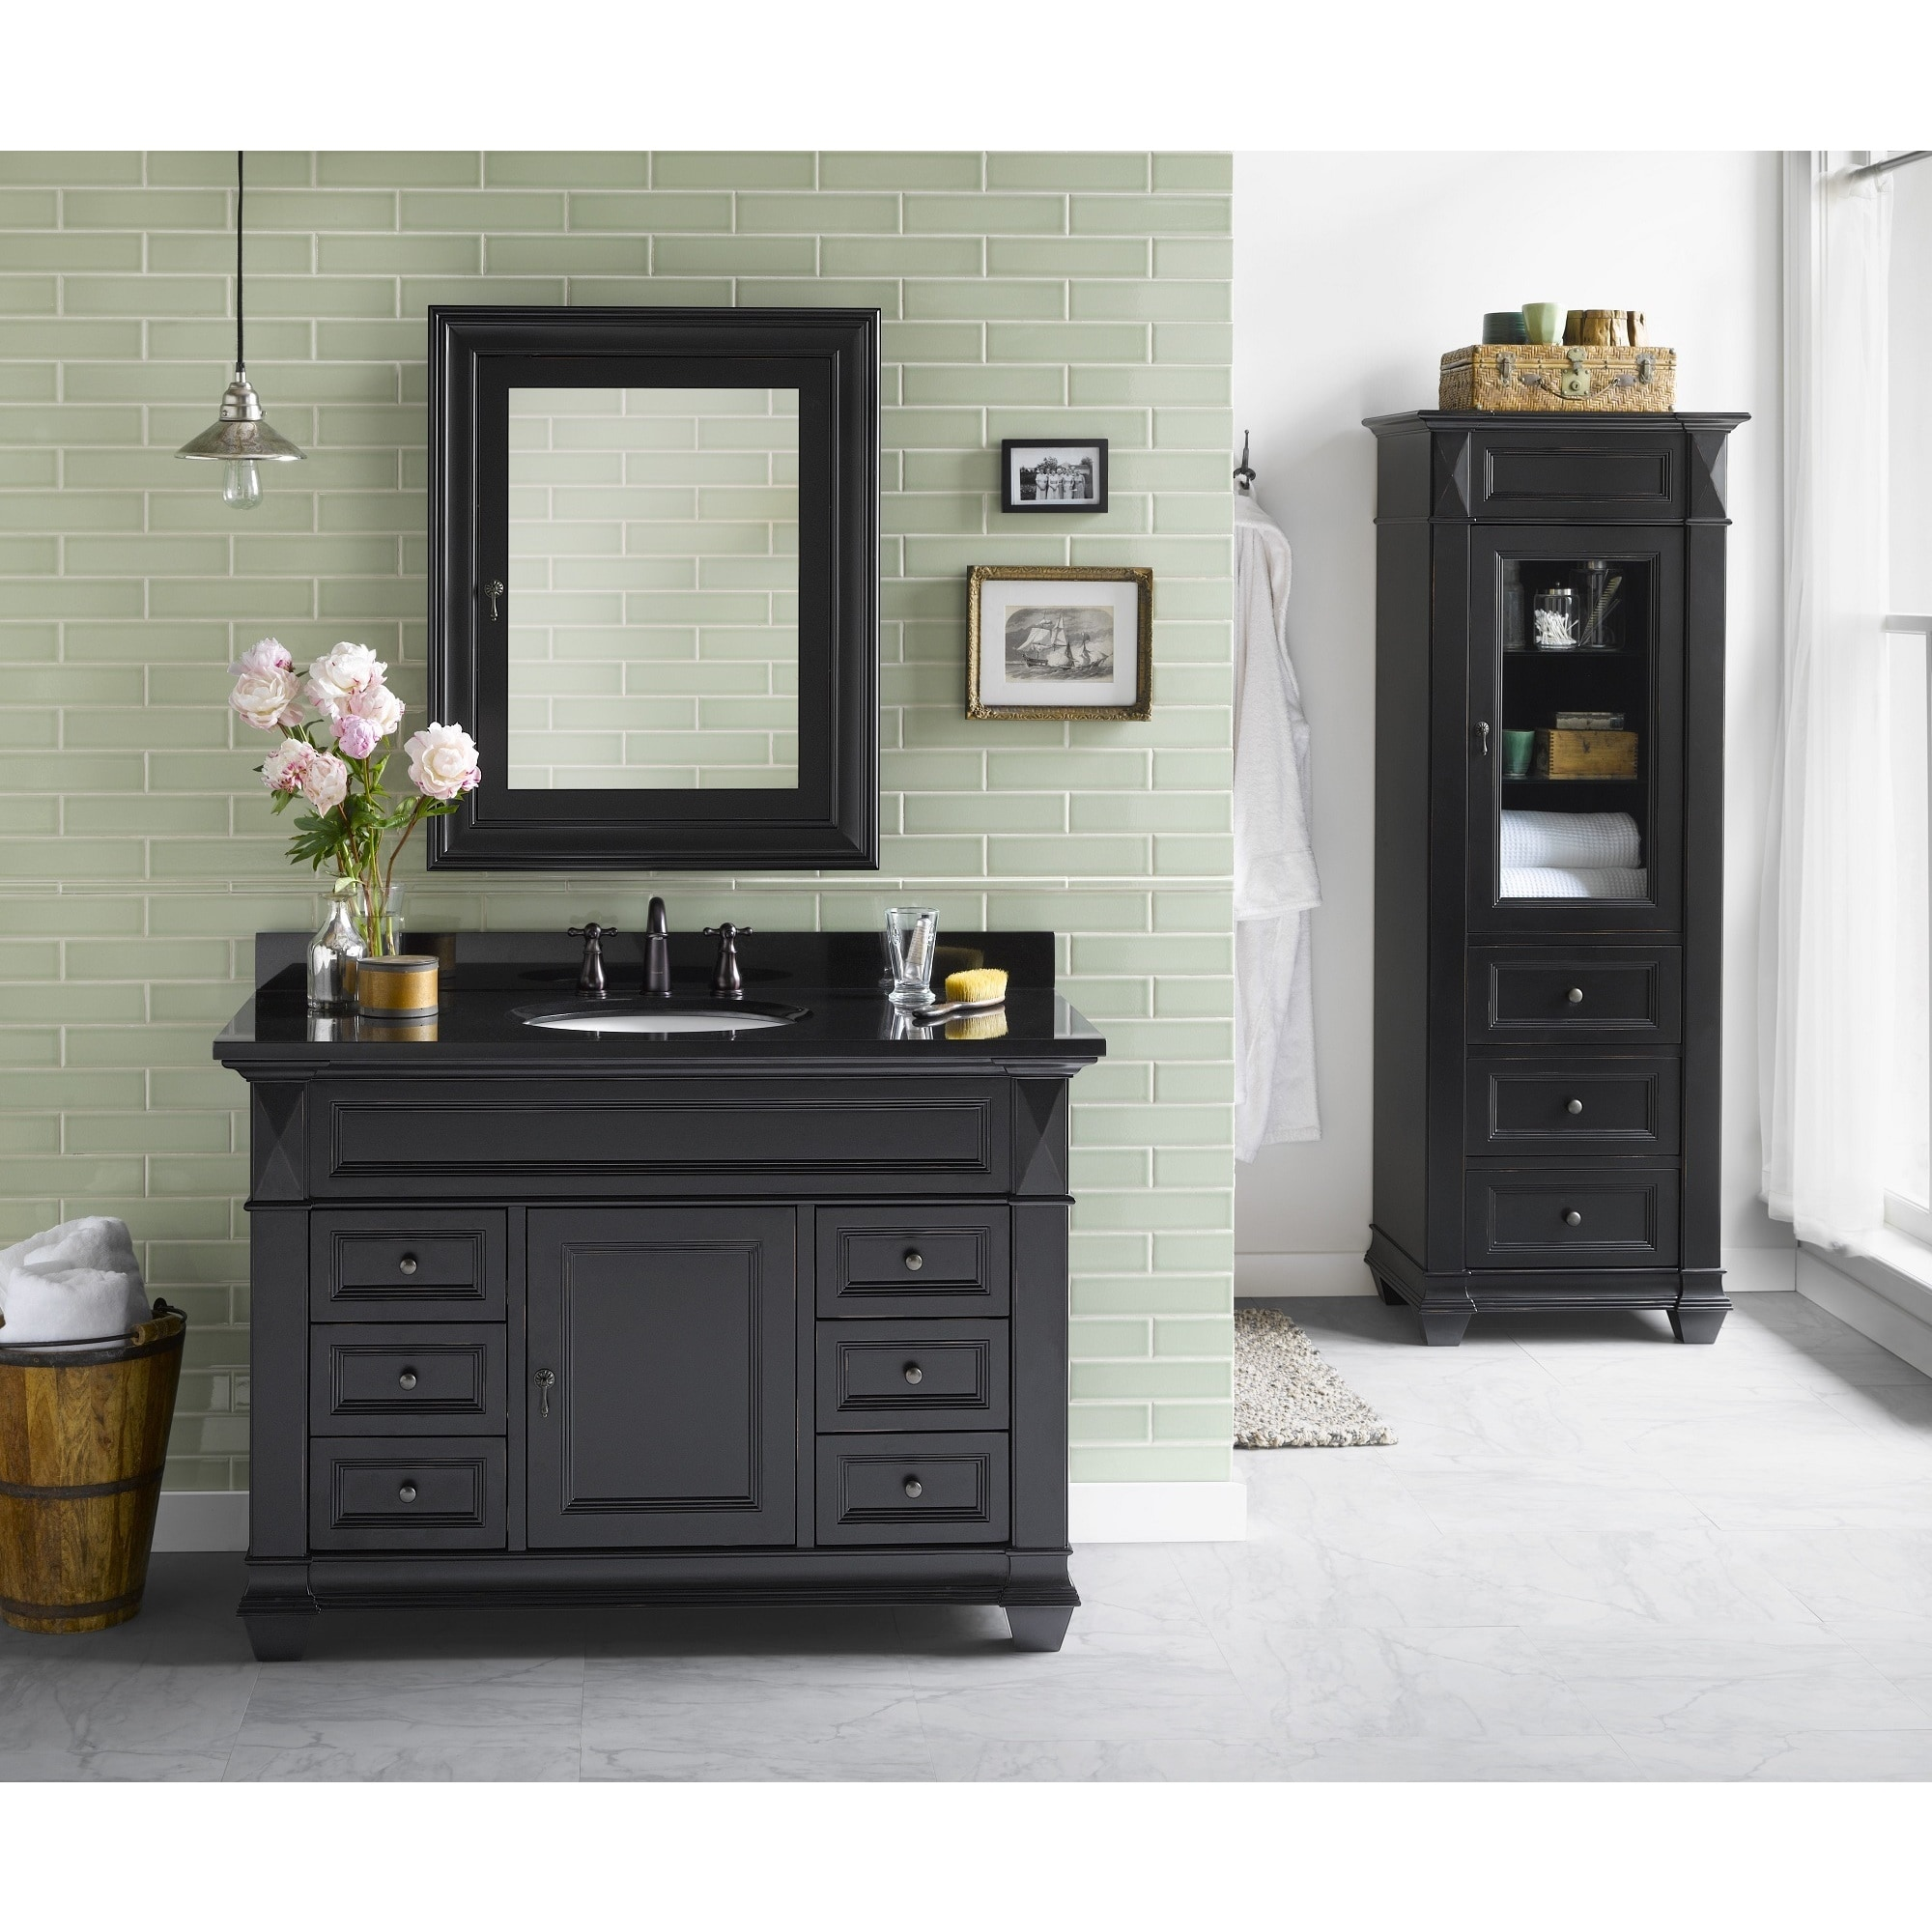 Picture of: Ronbow Torino 48 Inch Bathroom Vanity Set In Antique Black Medicine Cabinet Curio Cabinet Granite Top With White Oval Sink Overstock 13984162